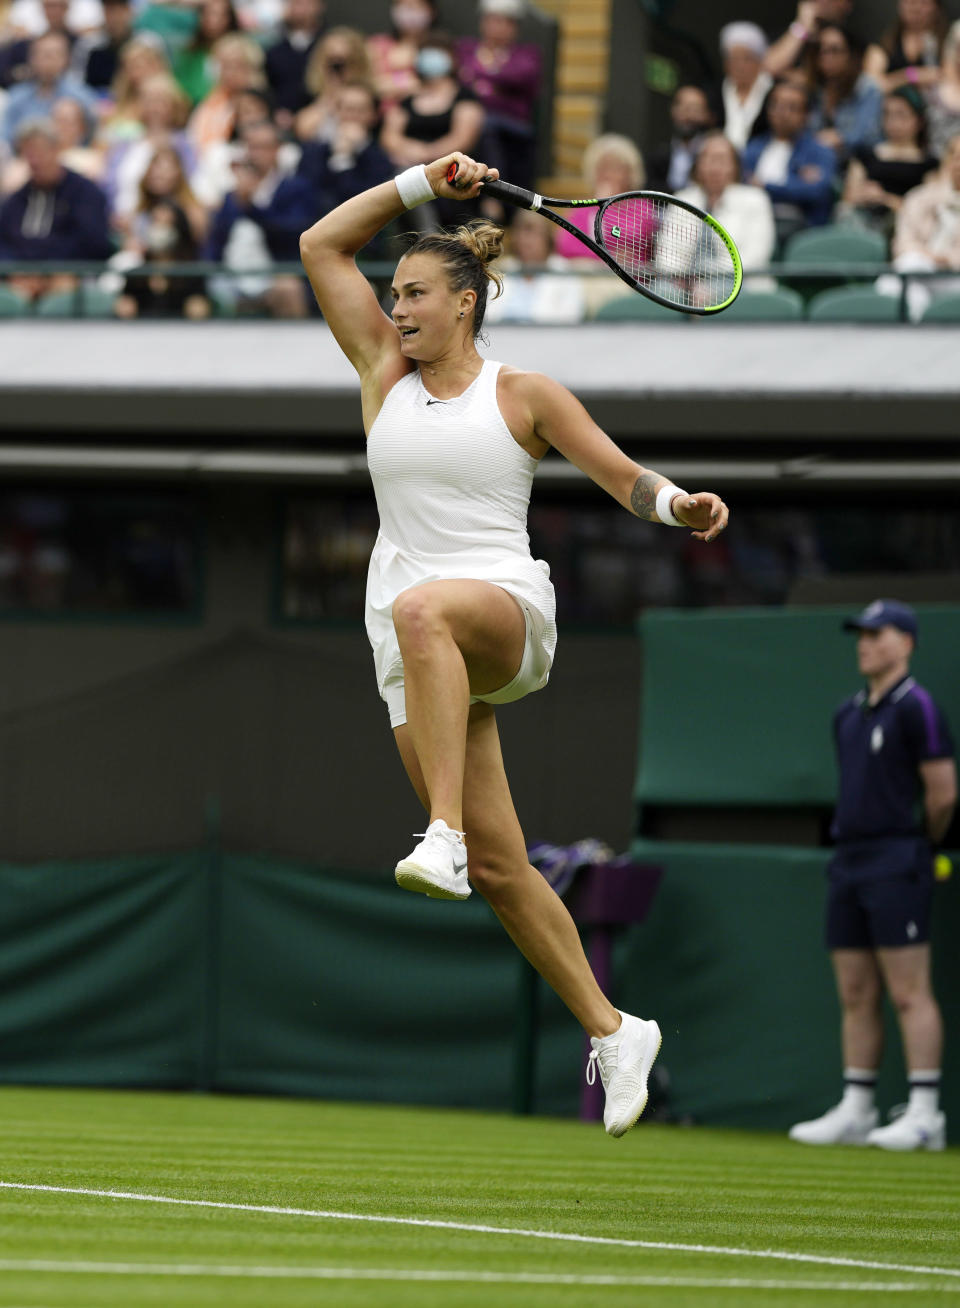 Belarus's Aryna Sabalenka returns a ball to Romania's Monica Niculescu during their first round women's singles match on day one of the Wimbledon Tennis Championships in London, Monday June 28, 2021. (AP Photo/Alastair Grant)